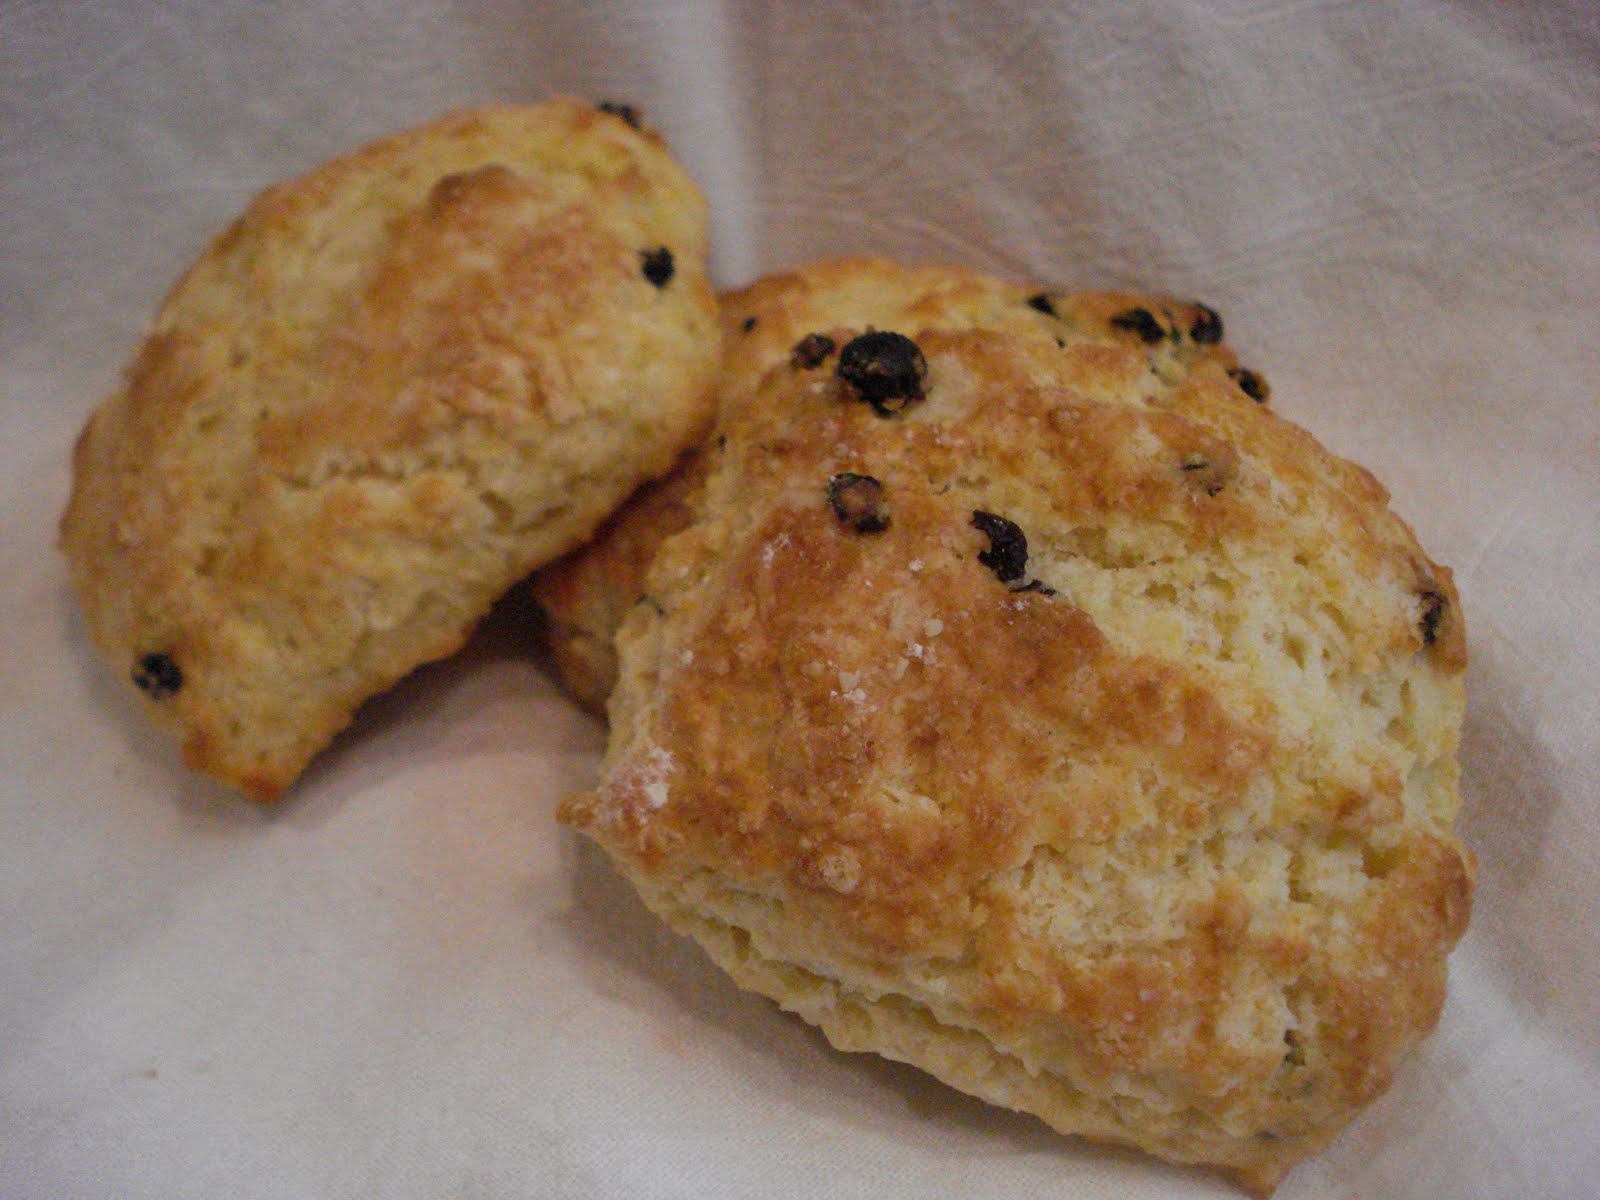 The Cookie Scoop: Buttermilk Lemon Currant Scones